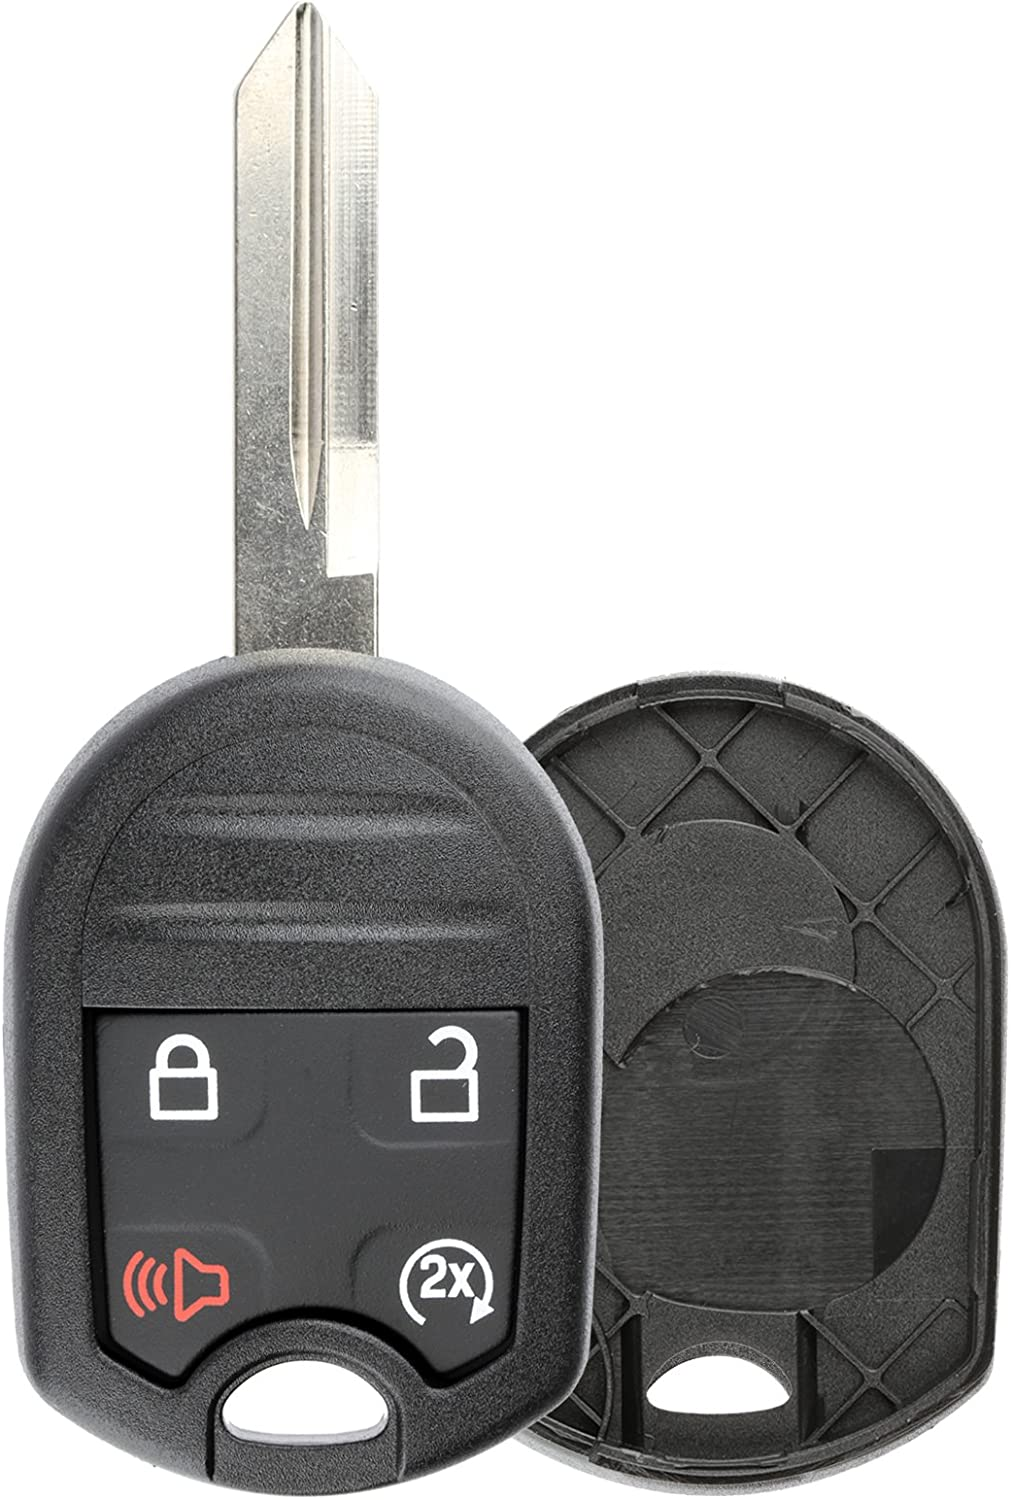 KeylessOption Keyless Entry Remote Uncut Blank Ignition Key Blade Fob Shell Case Cover Buttons for F-150 F-250 Explorer Edge